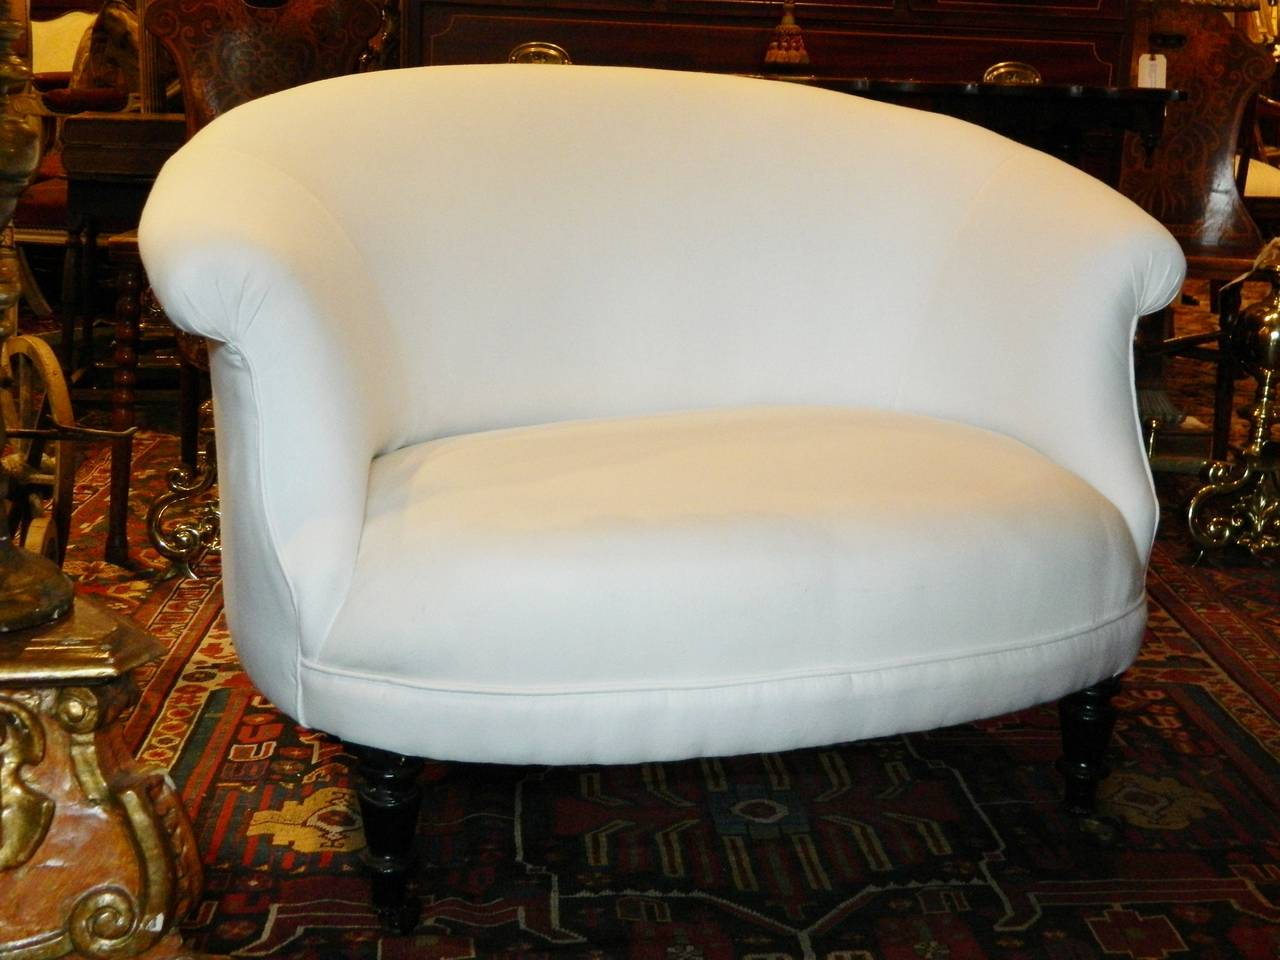 French Napoleon III Settee Raised on Turned Legs with Casters, circa 1880 In Excellent Condition For Sale In Savannah, GA